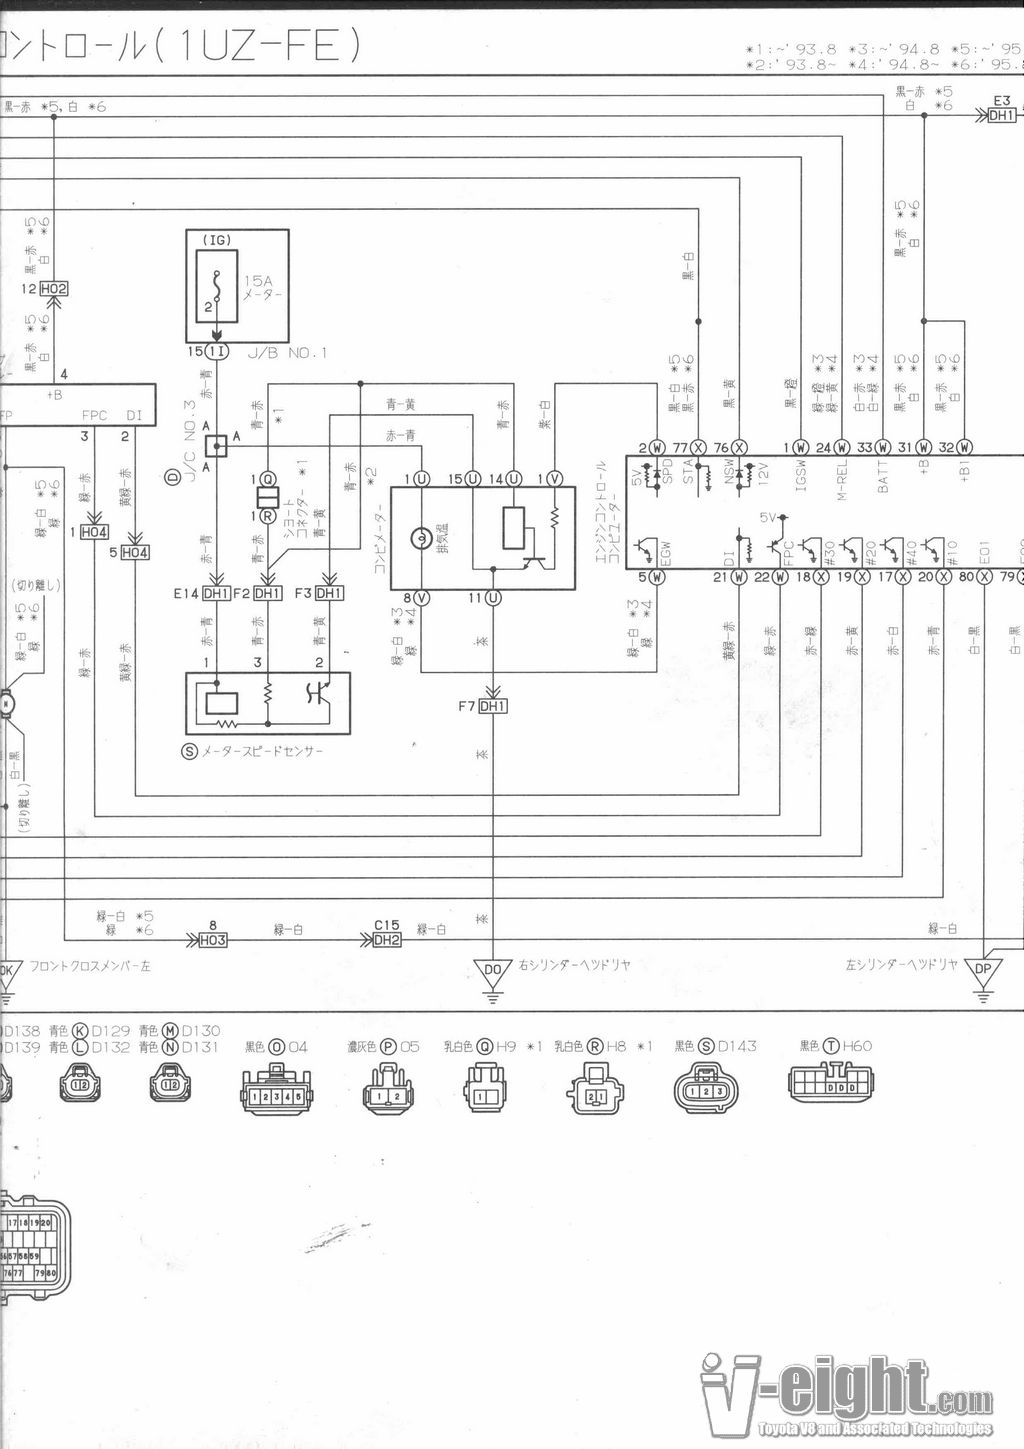 1991 toyota 4runner radio wiring diagram gmos 06 aristo get free image about